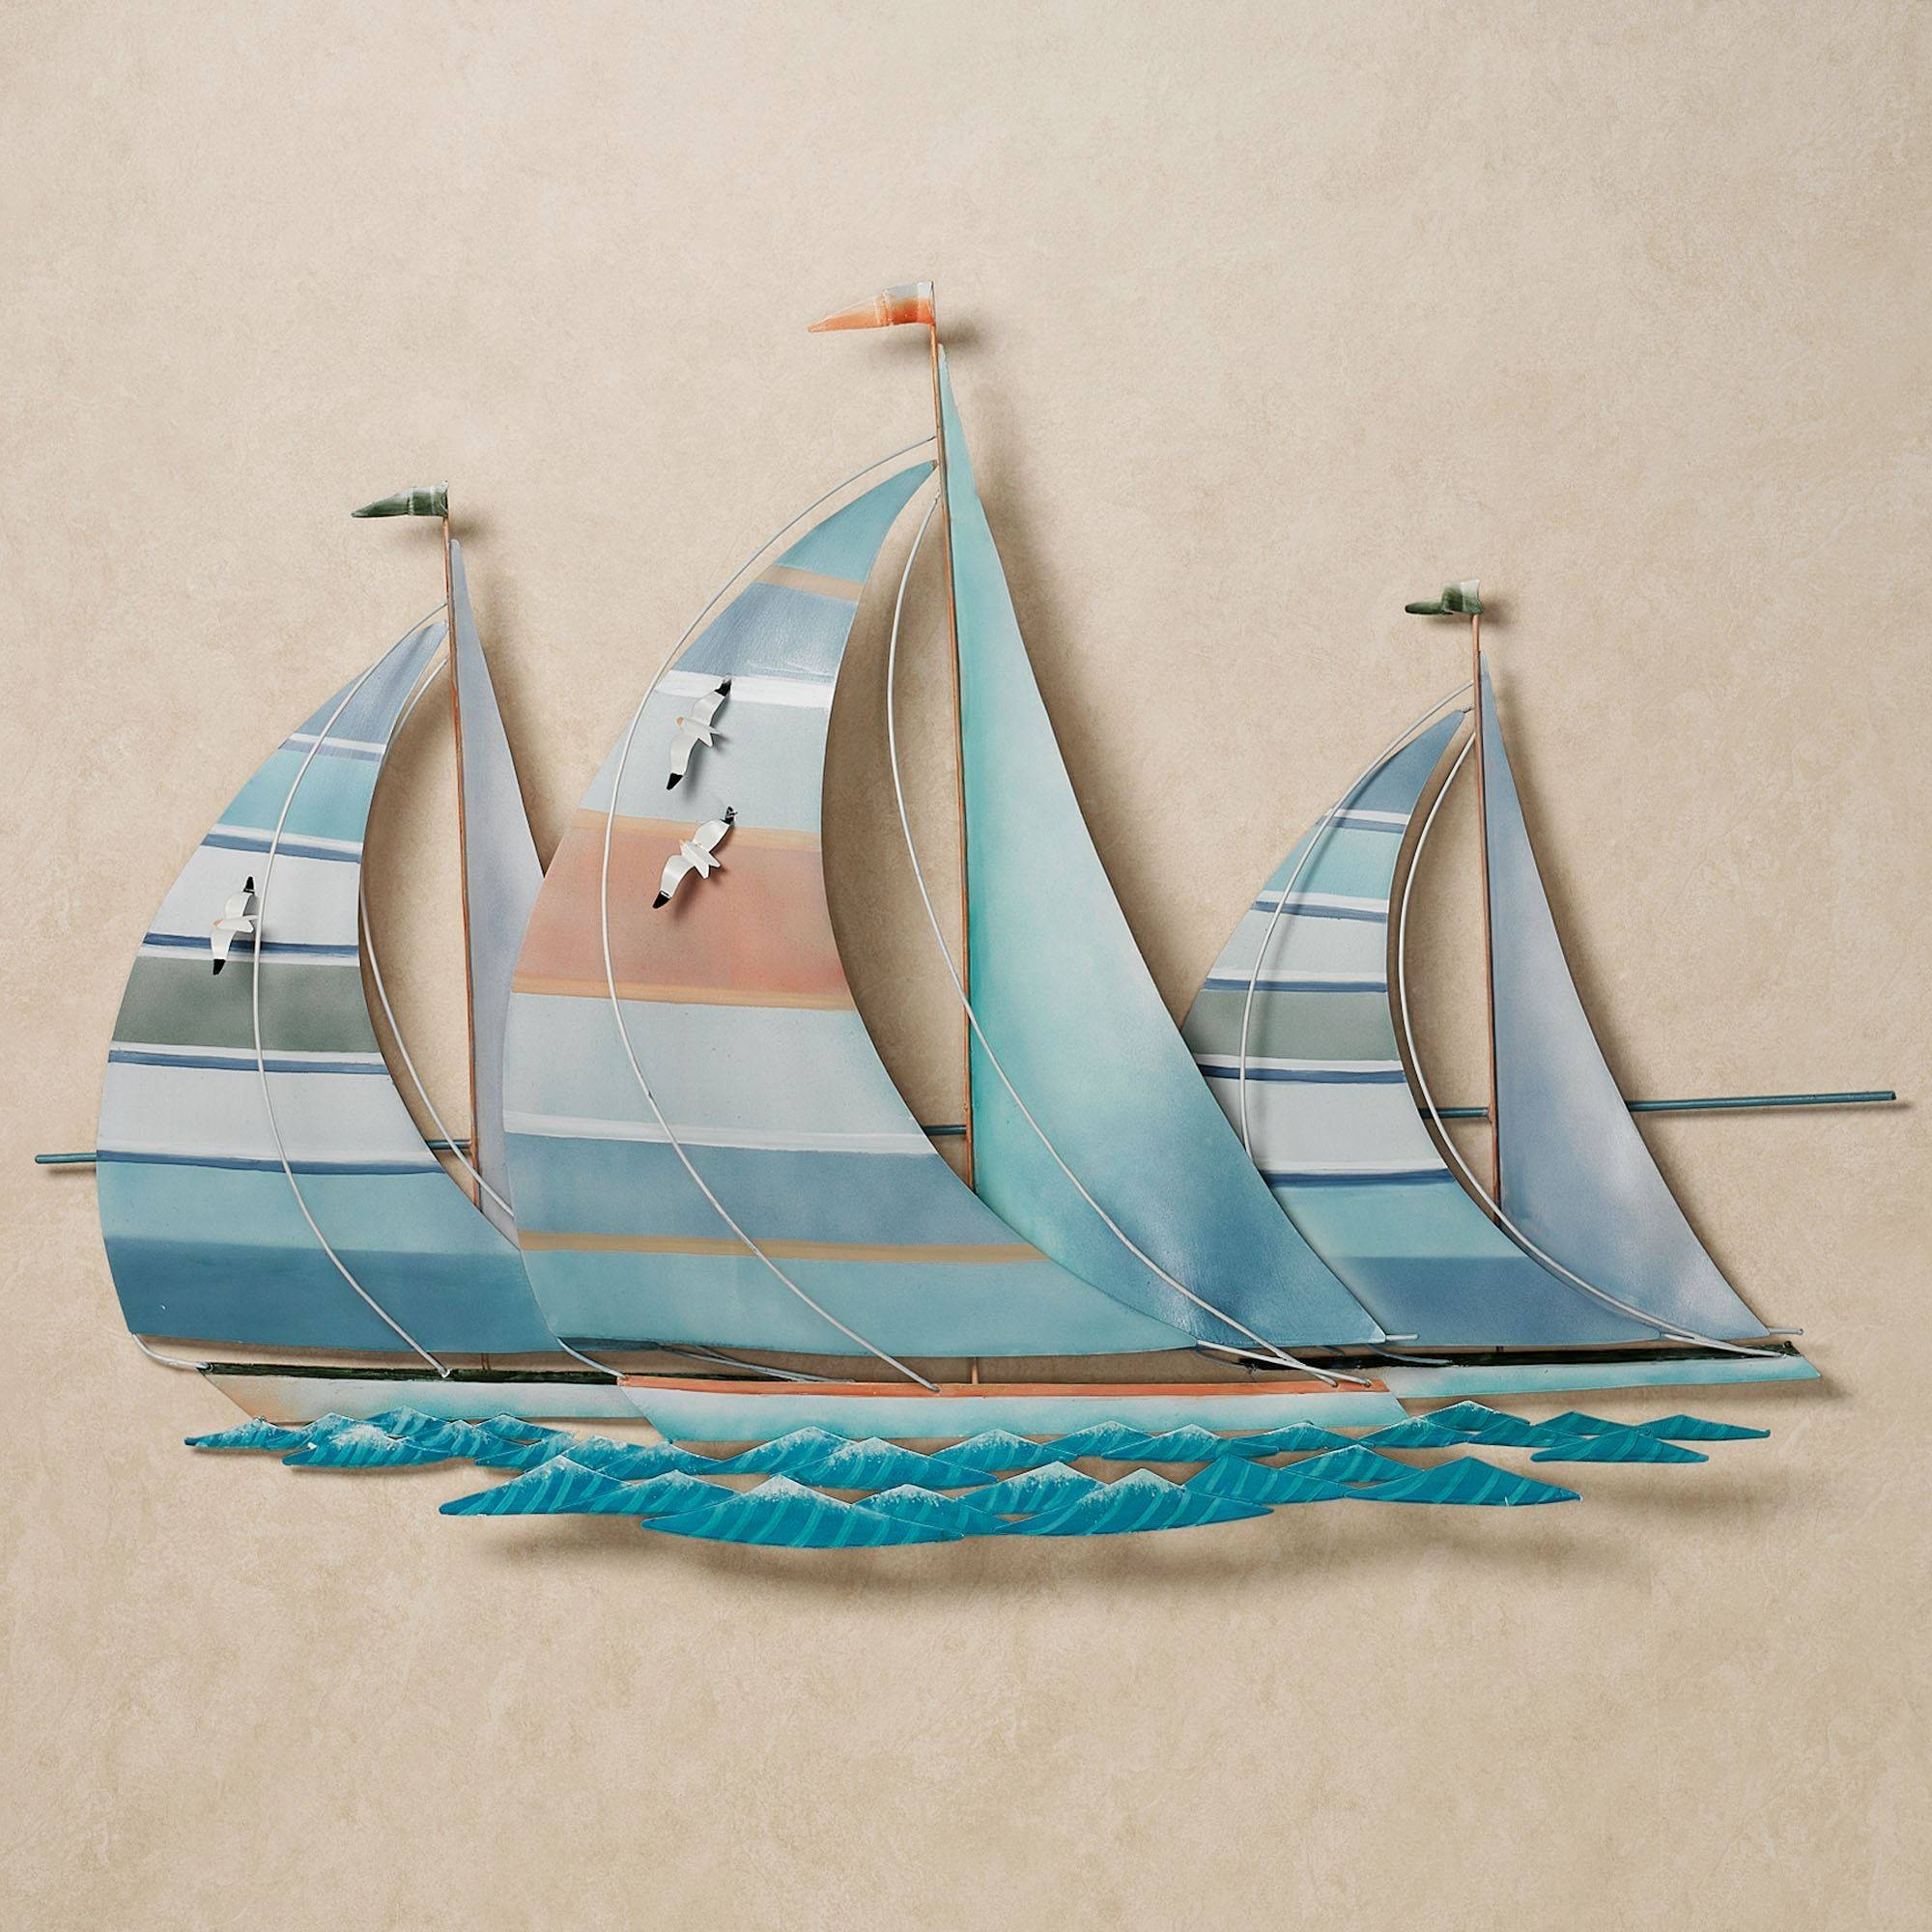 Regatta Finish Line Multi Cool Metal Sailboat Wall Sculpture For Current Metal Sailboat Wall Art (View 20 of 30)